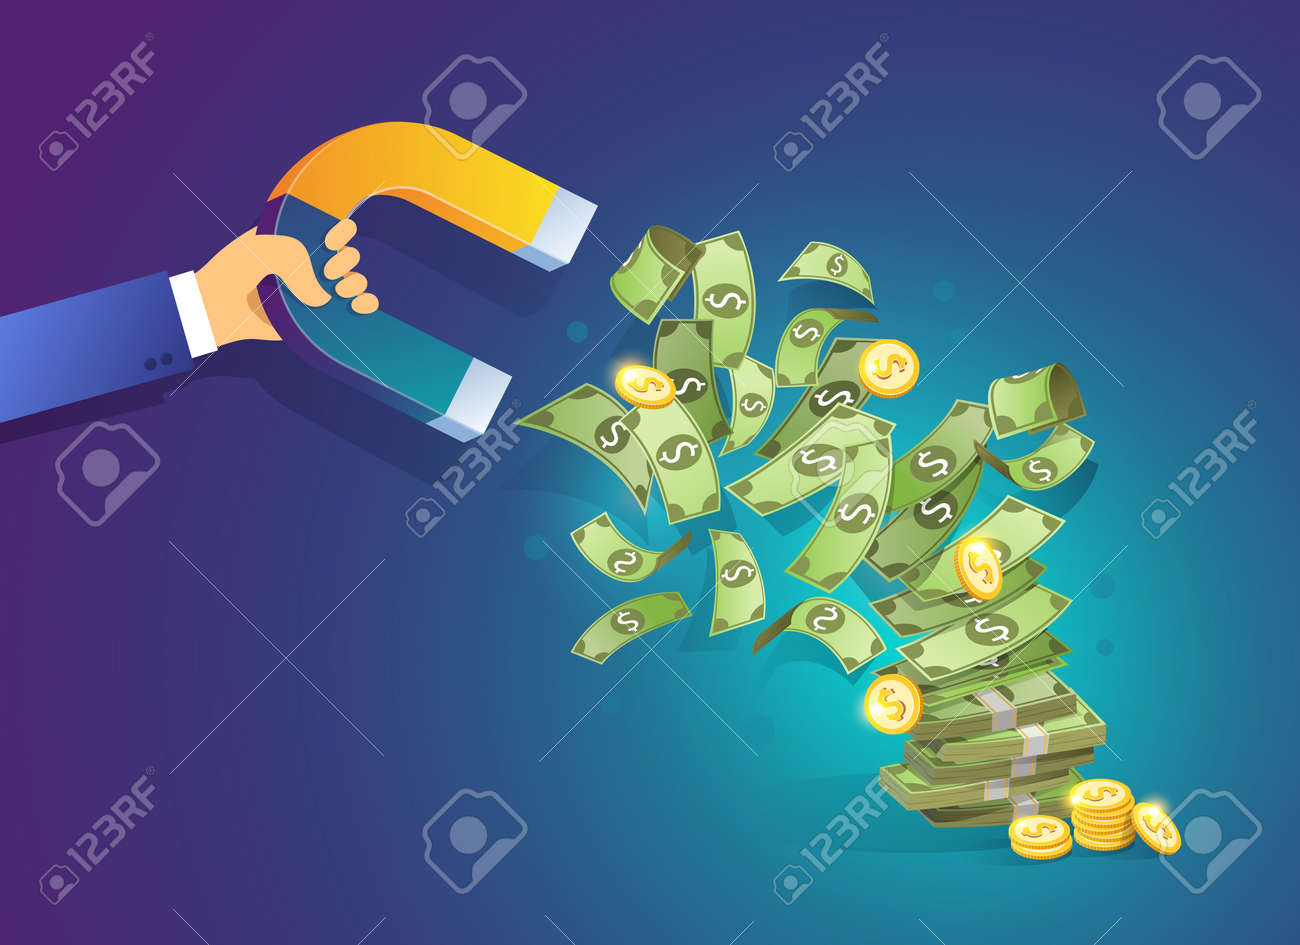 Hand holding a magnet attracting money. Isometric vector concept of attracting investments, money, business, success. Illustration for web site page and mobile app - 162664049